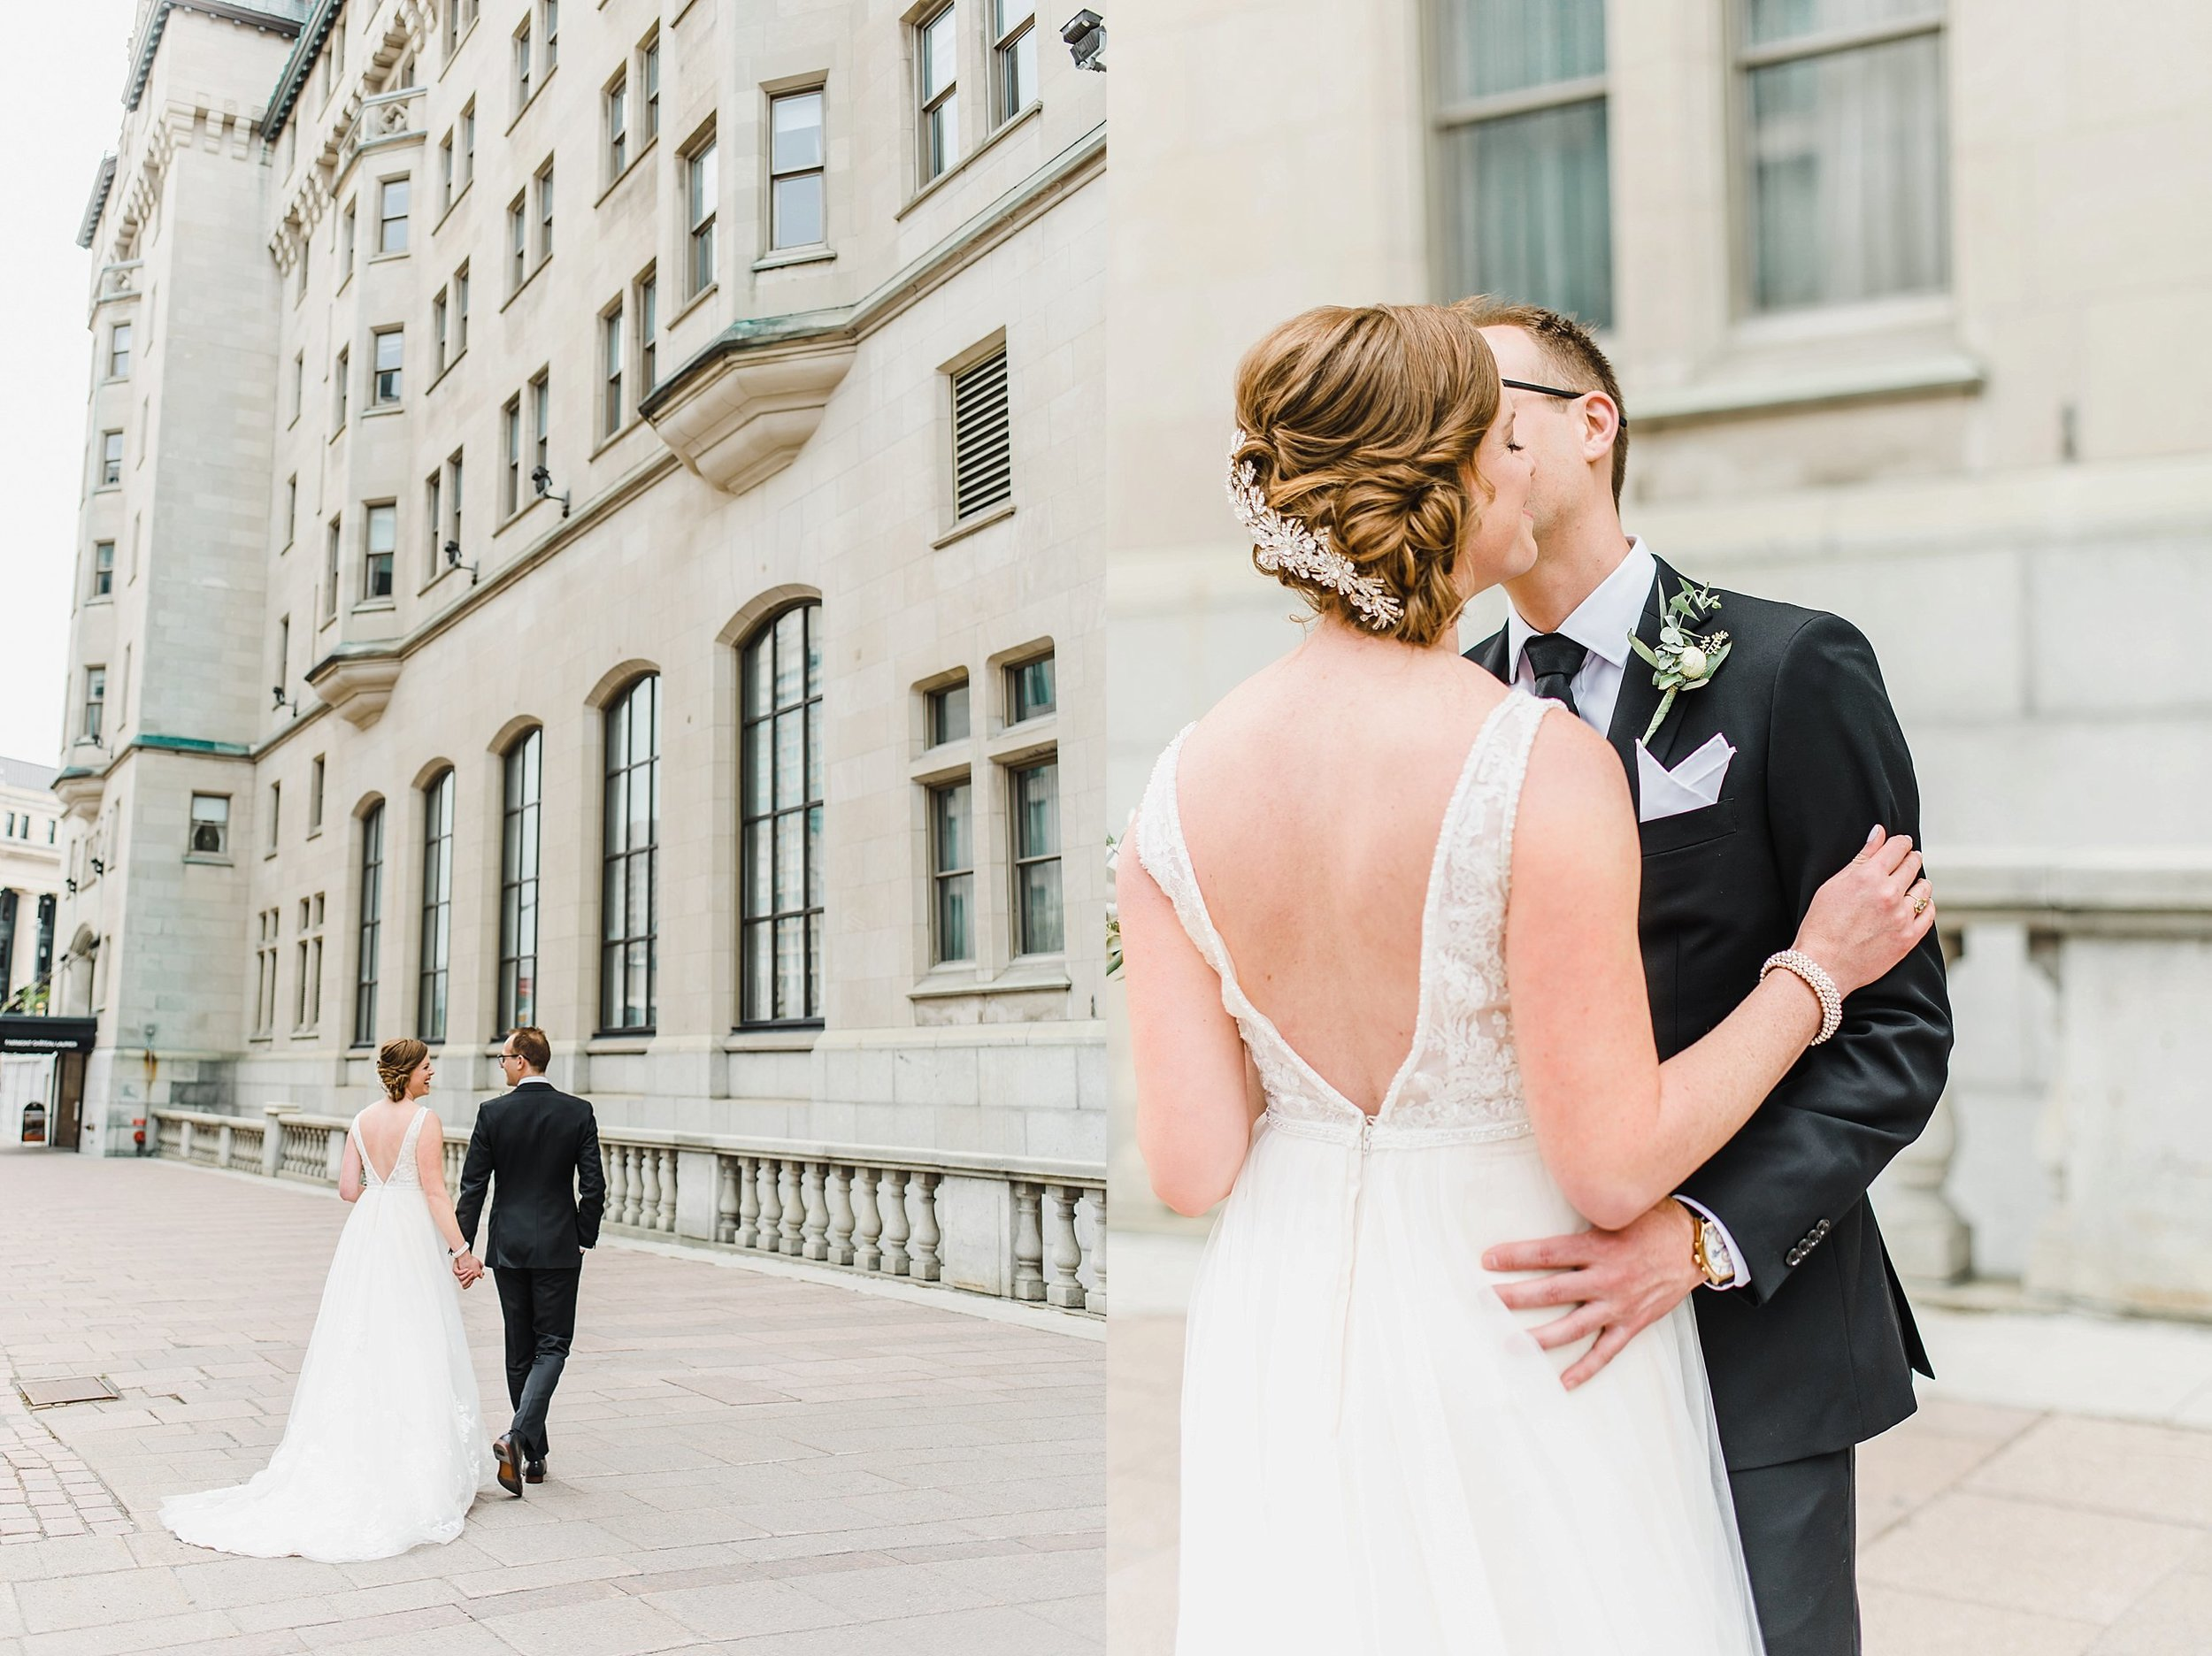 light airy indie fine art ottawa wedding photographer | Ali and Batoul Photography_0323.jpg